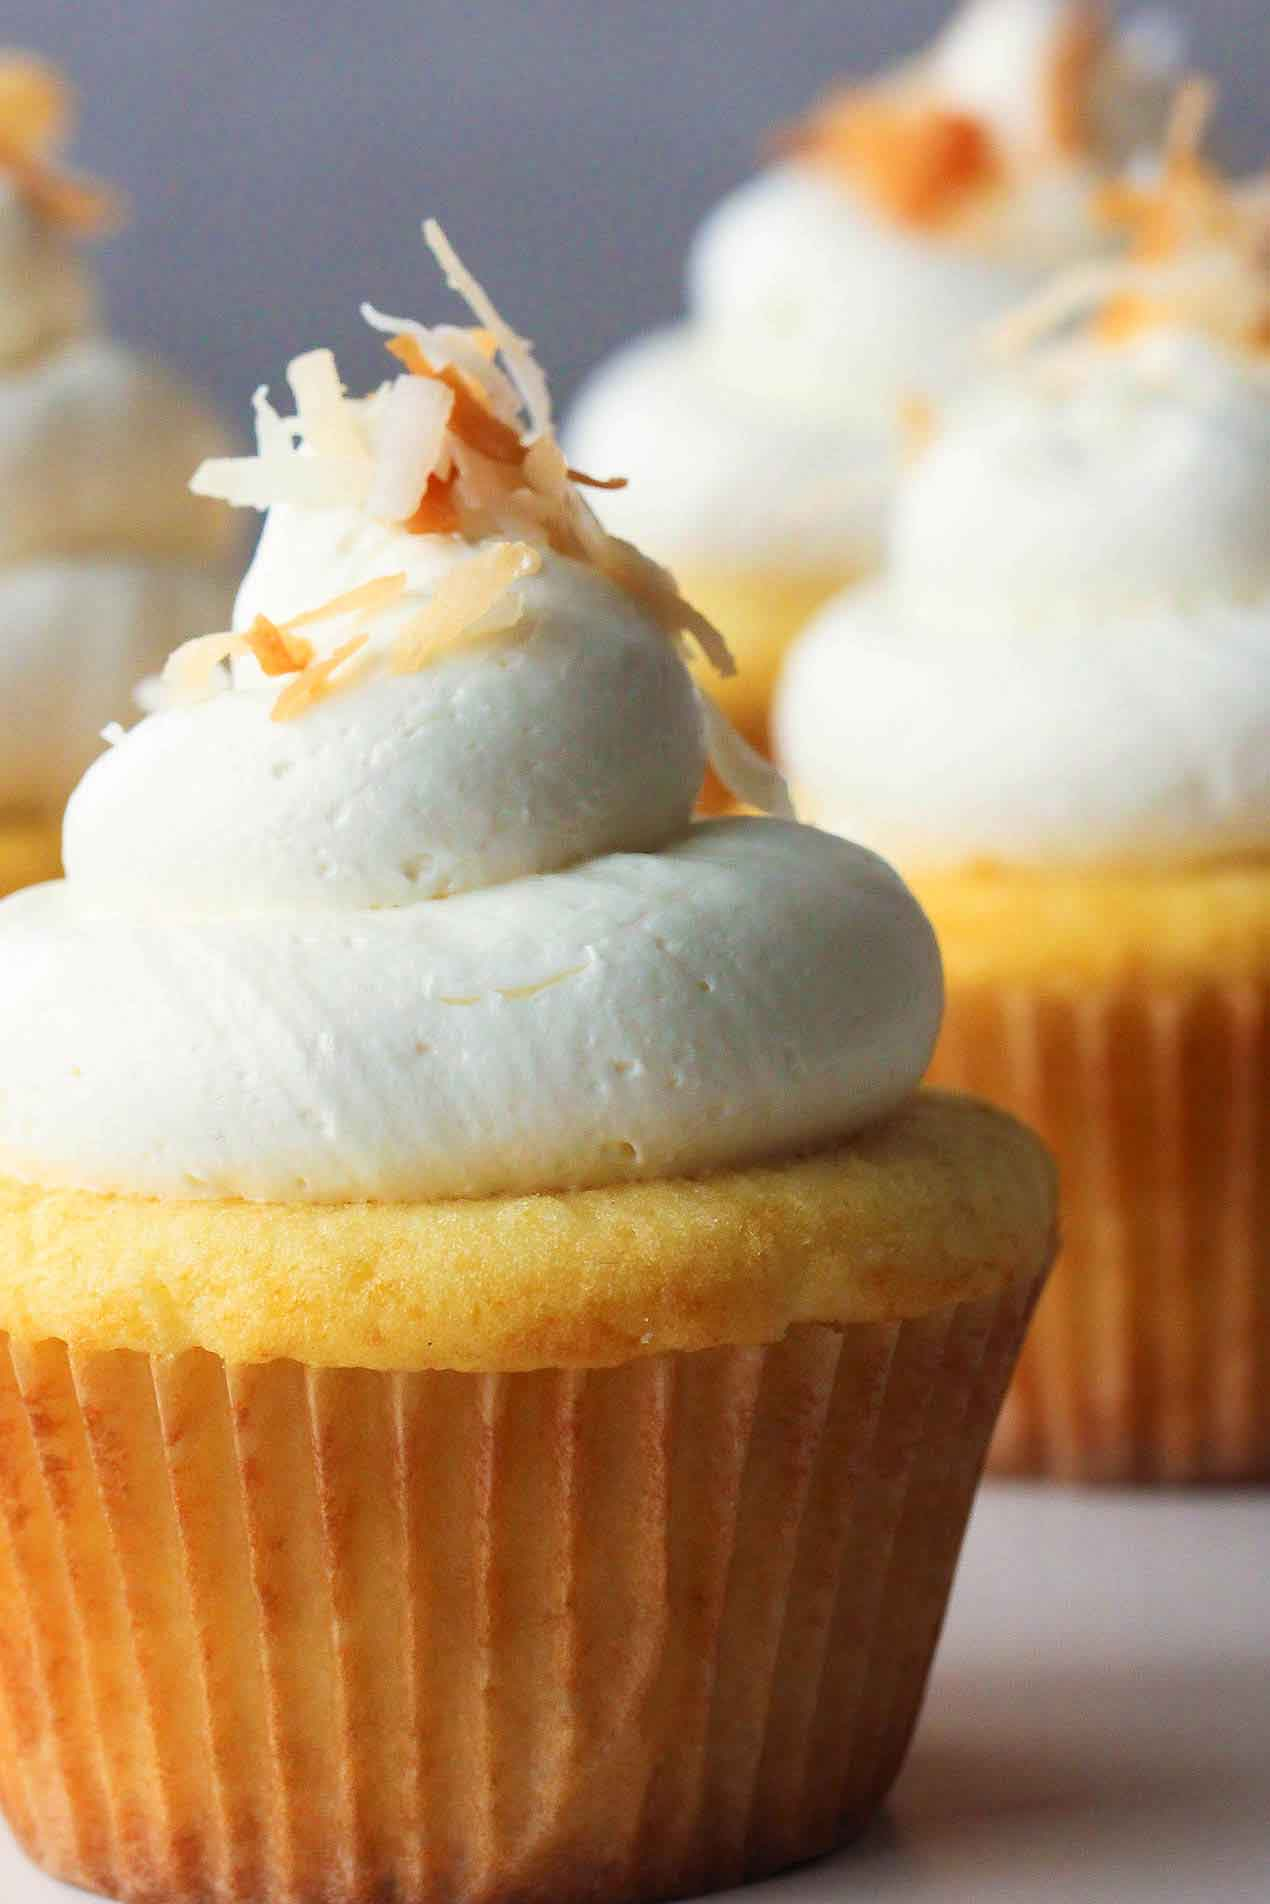 coconut-lemon curd cupcakes recipe